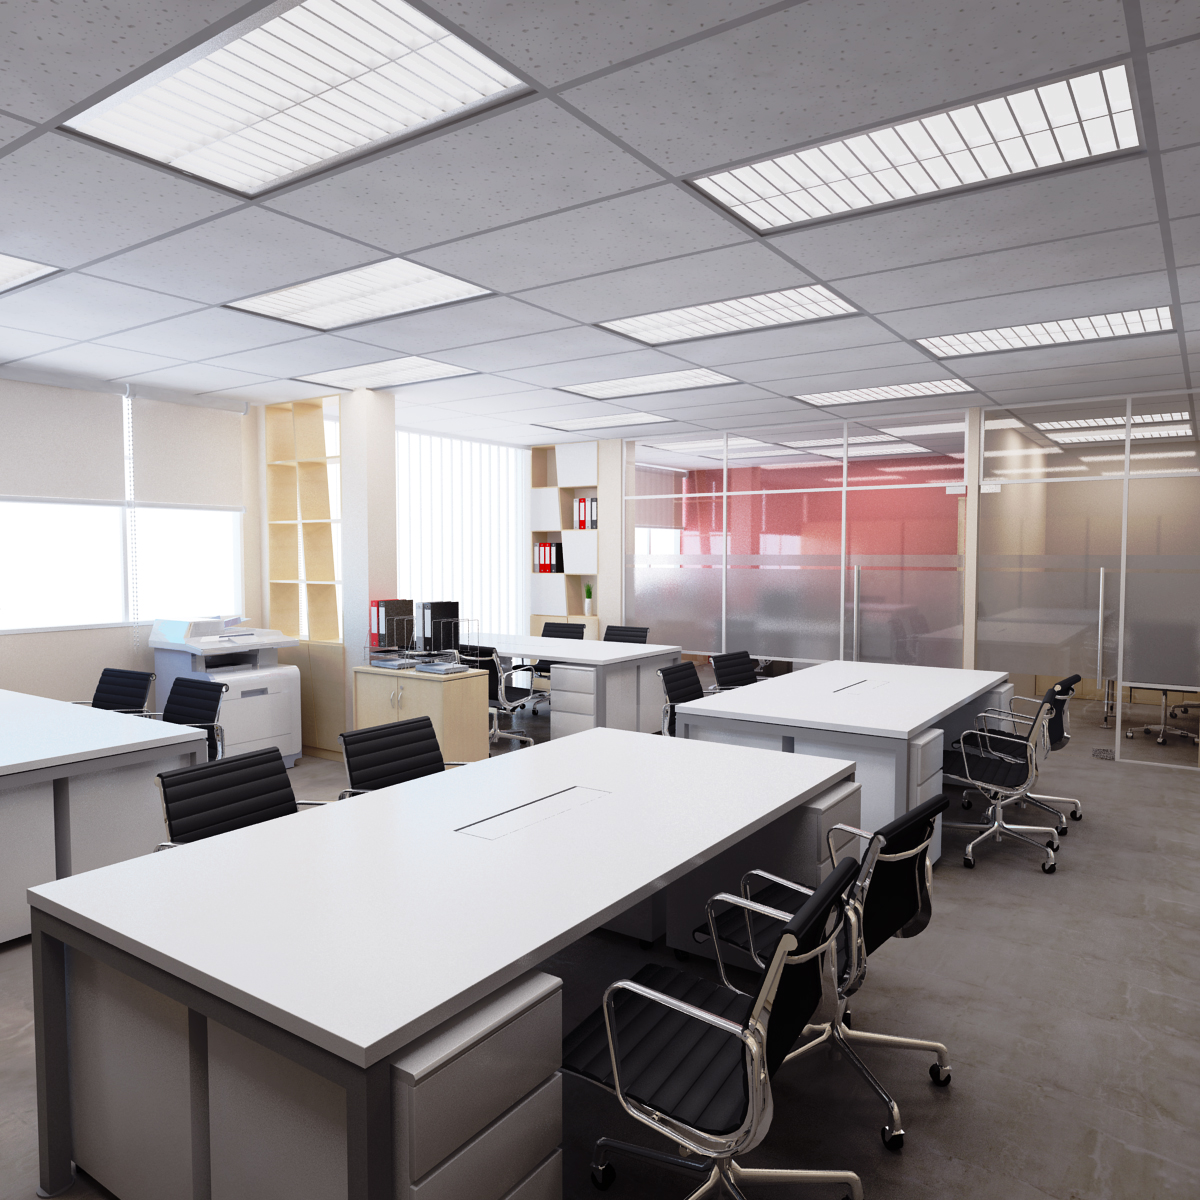 Office General Area 2